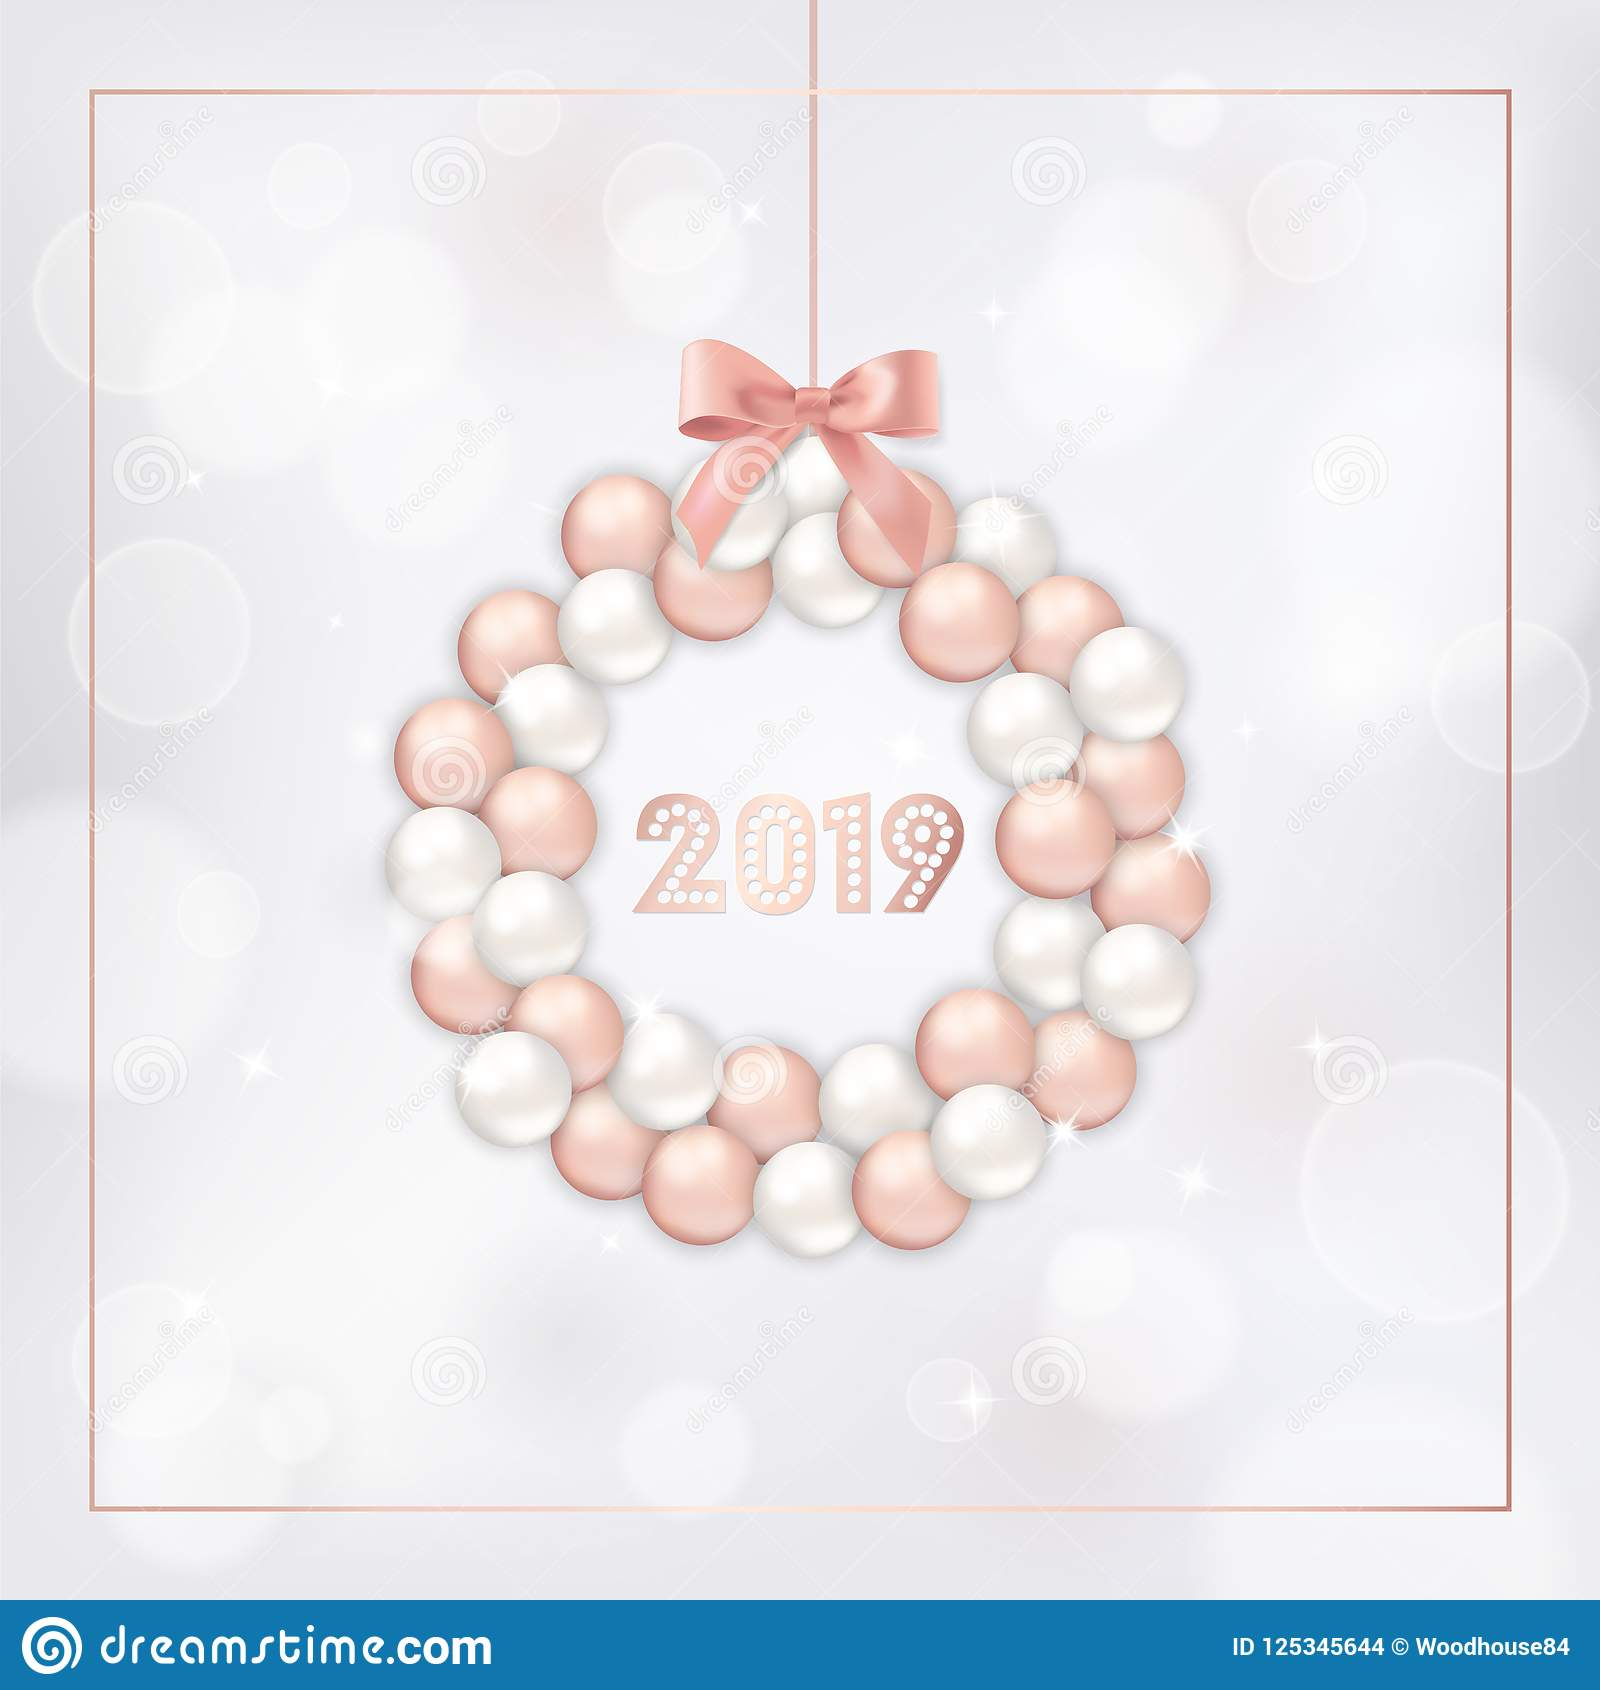 Elegant New Year 2019 Card With Rose Gold Christmas Balls Wreath For